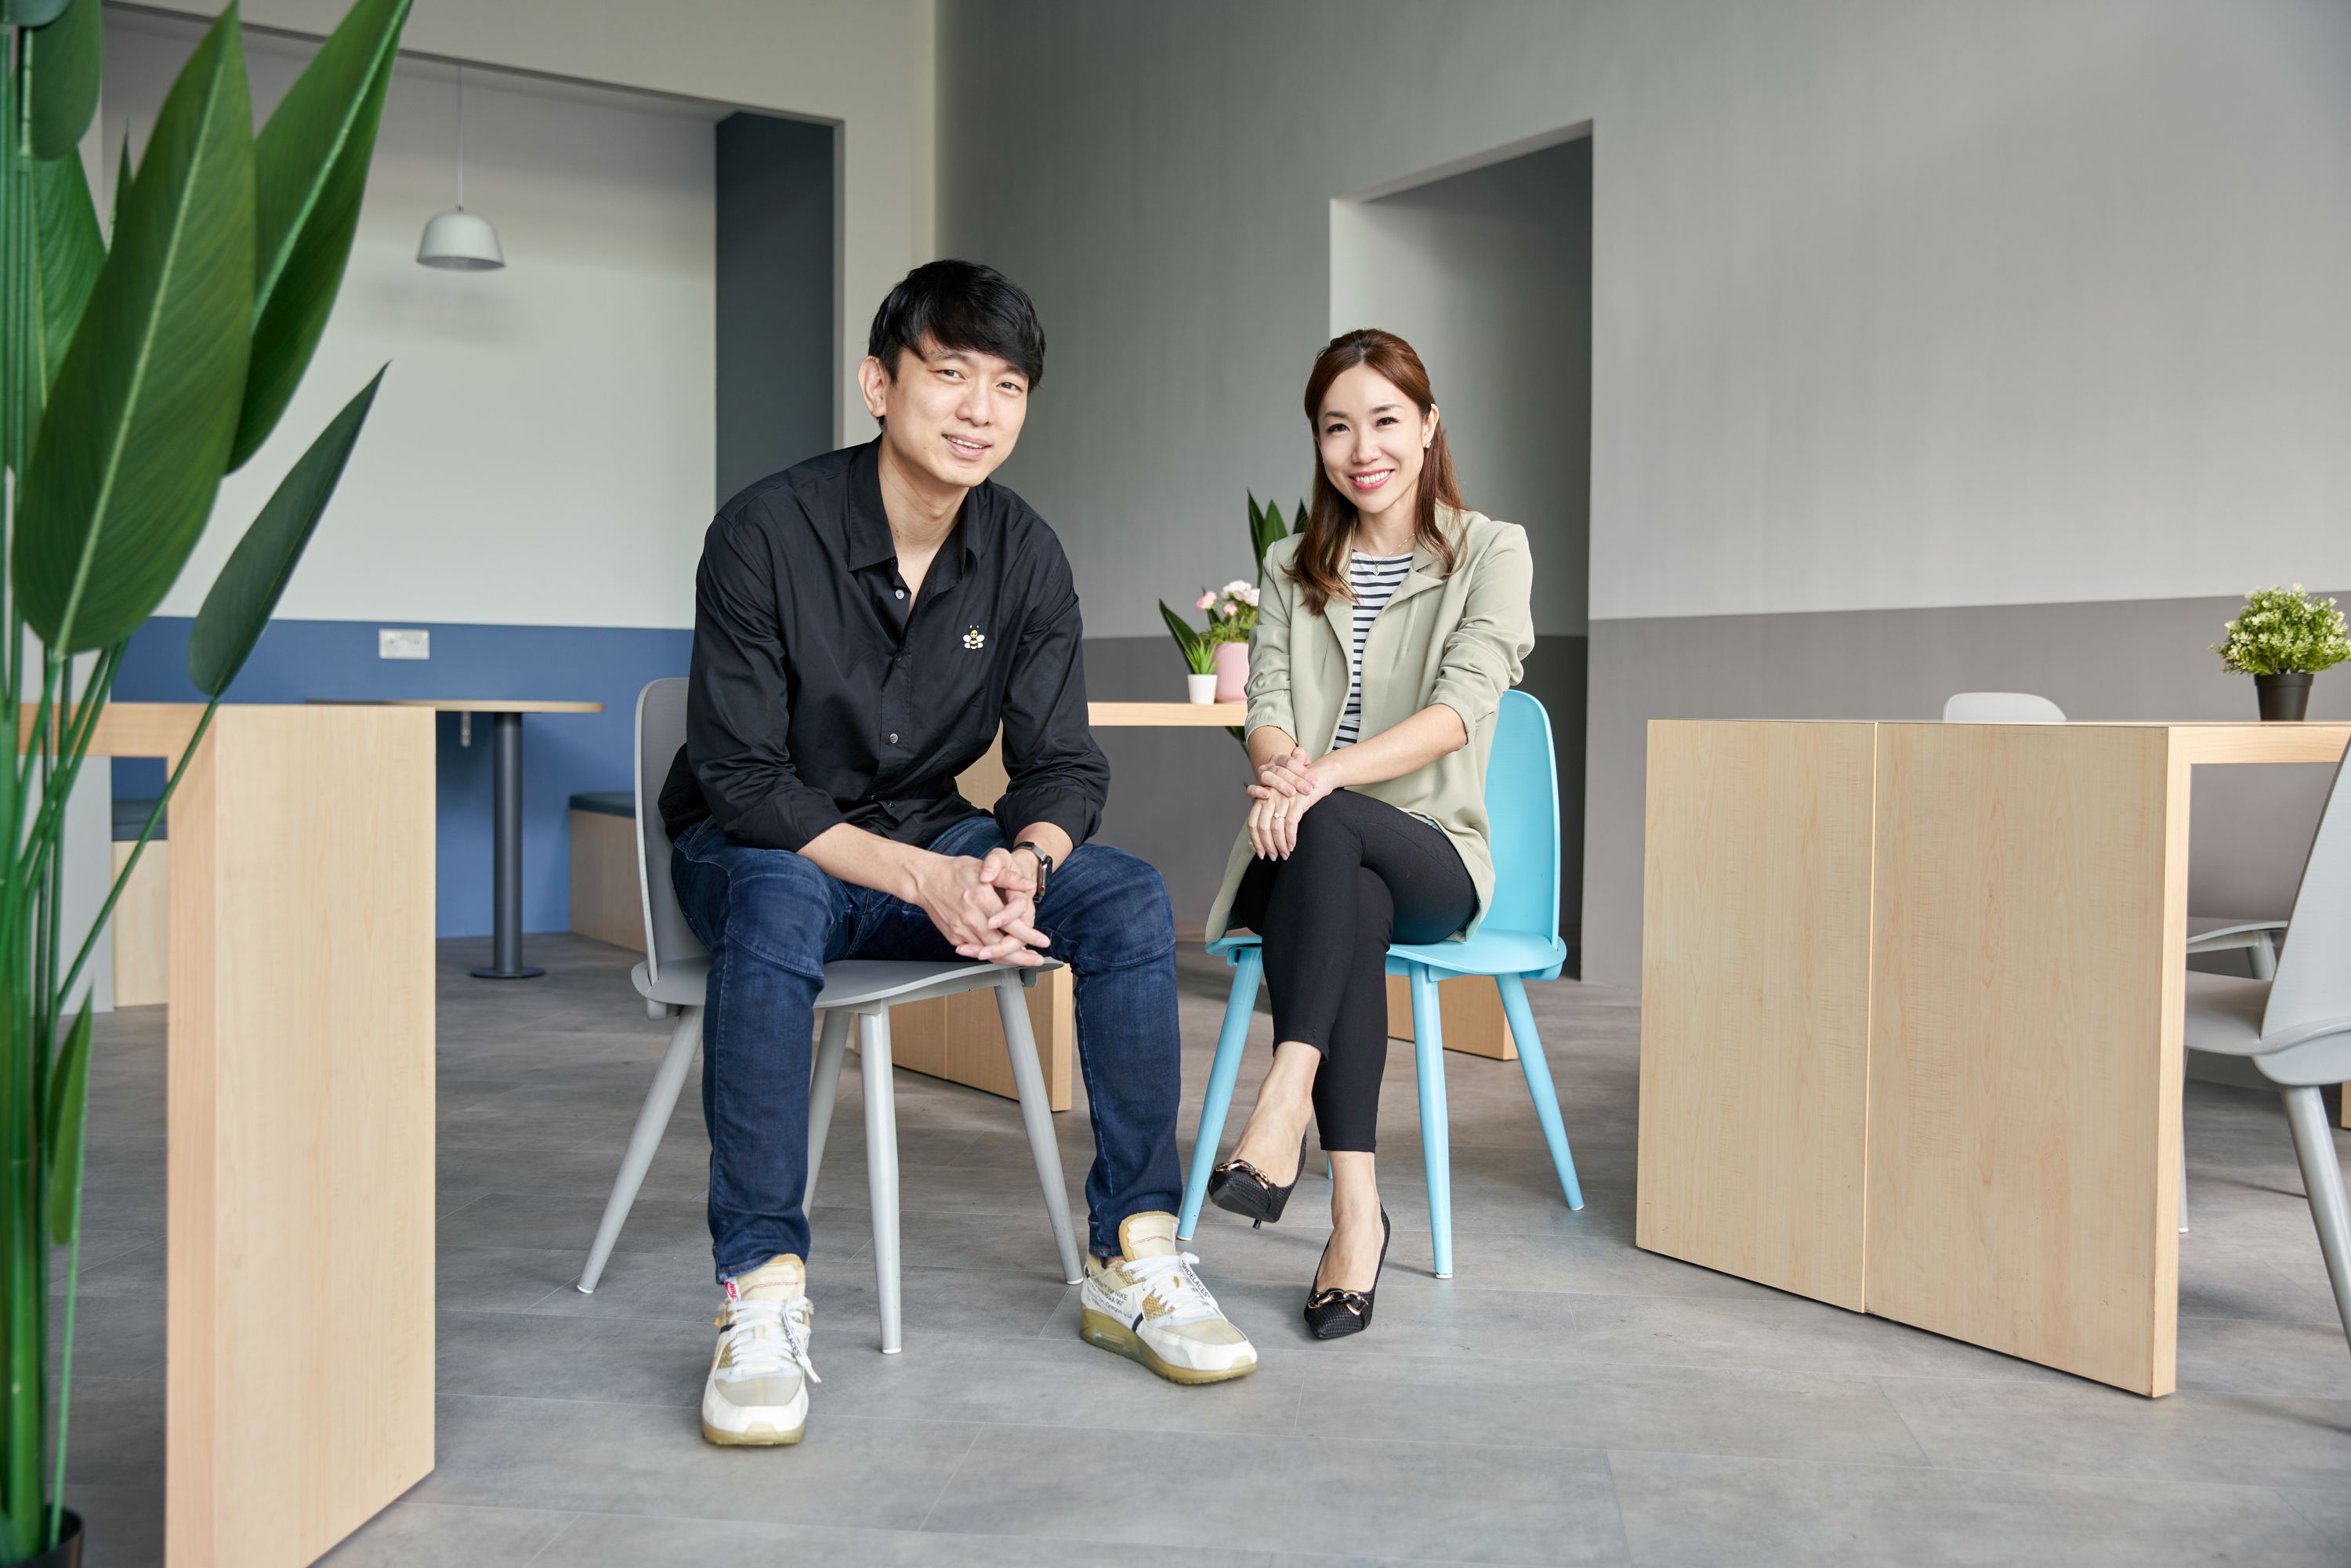 Leading Singapore EdTech startup Geniebook raises US$16.6 million in Series A funding Round led by East Ventures and Lightspeed; to scale team with strategic new hires